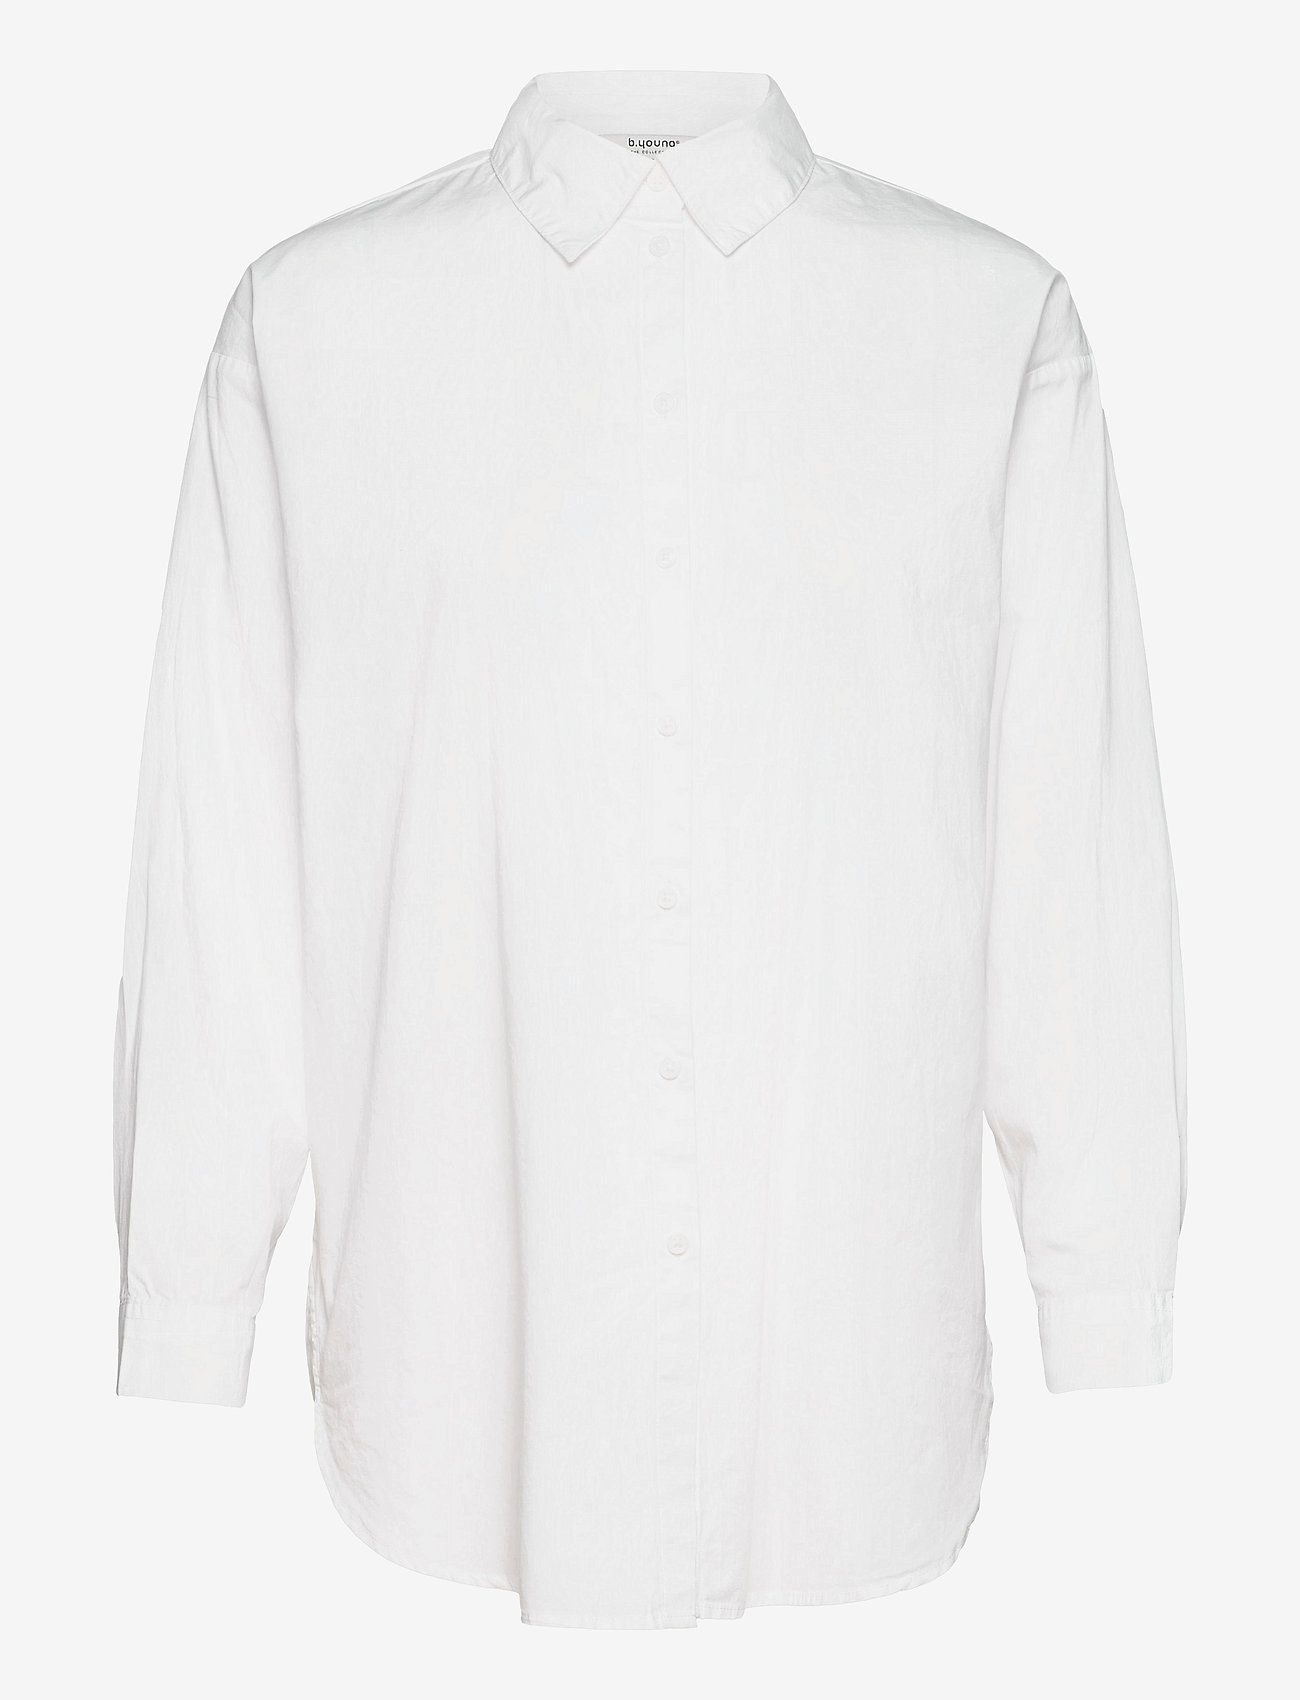 b.young - BYGAMZE SHIRT - - long-sleeved shirts - bright white - 0